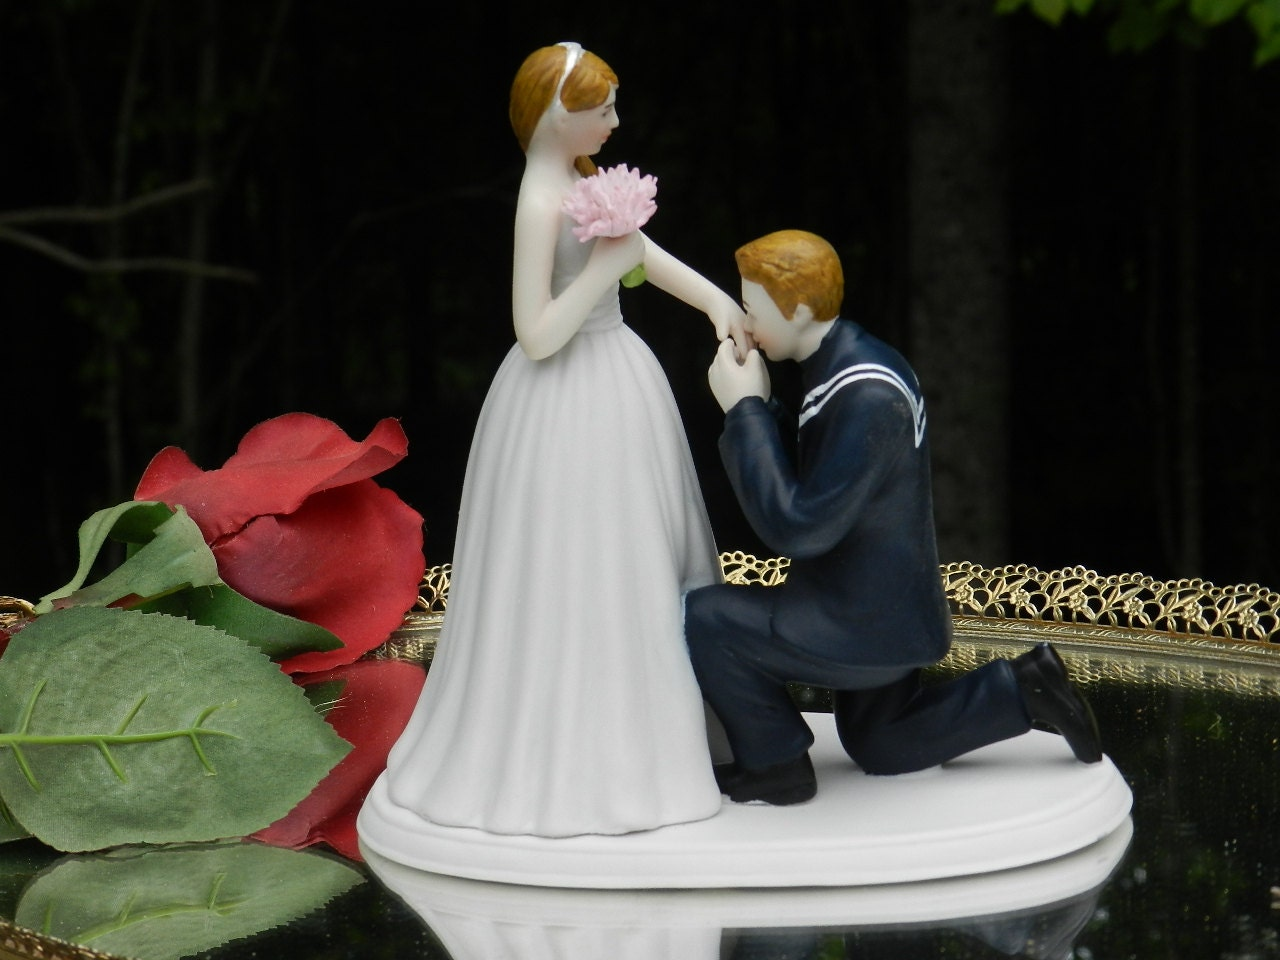 Usn Navy Sailor Kiss Military Prince Wedding Cake Topper